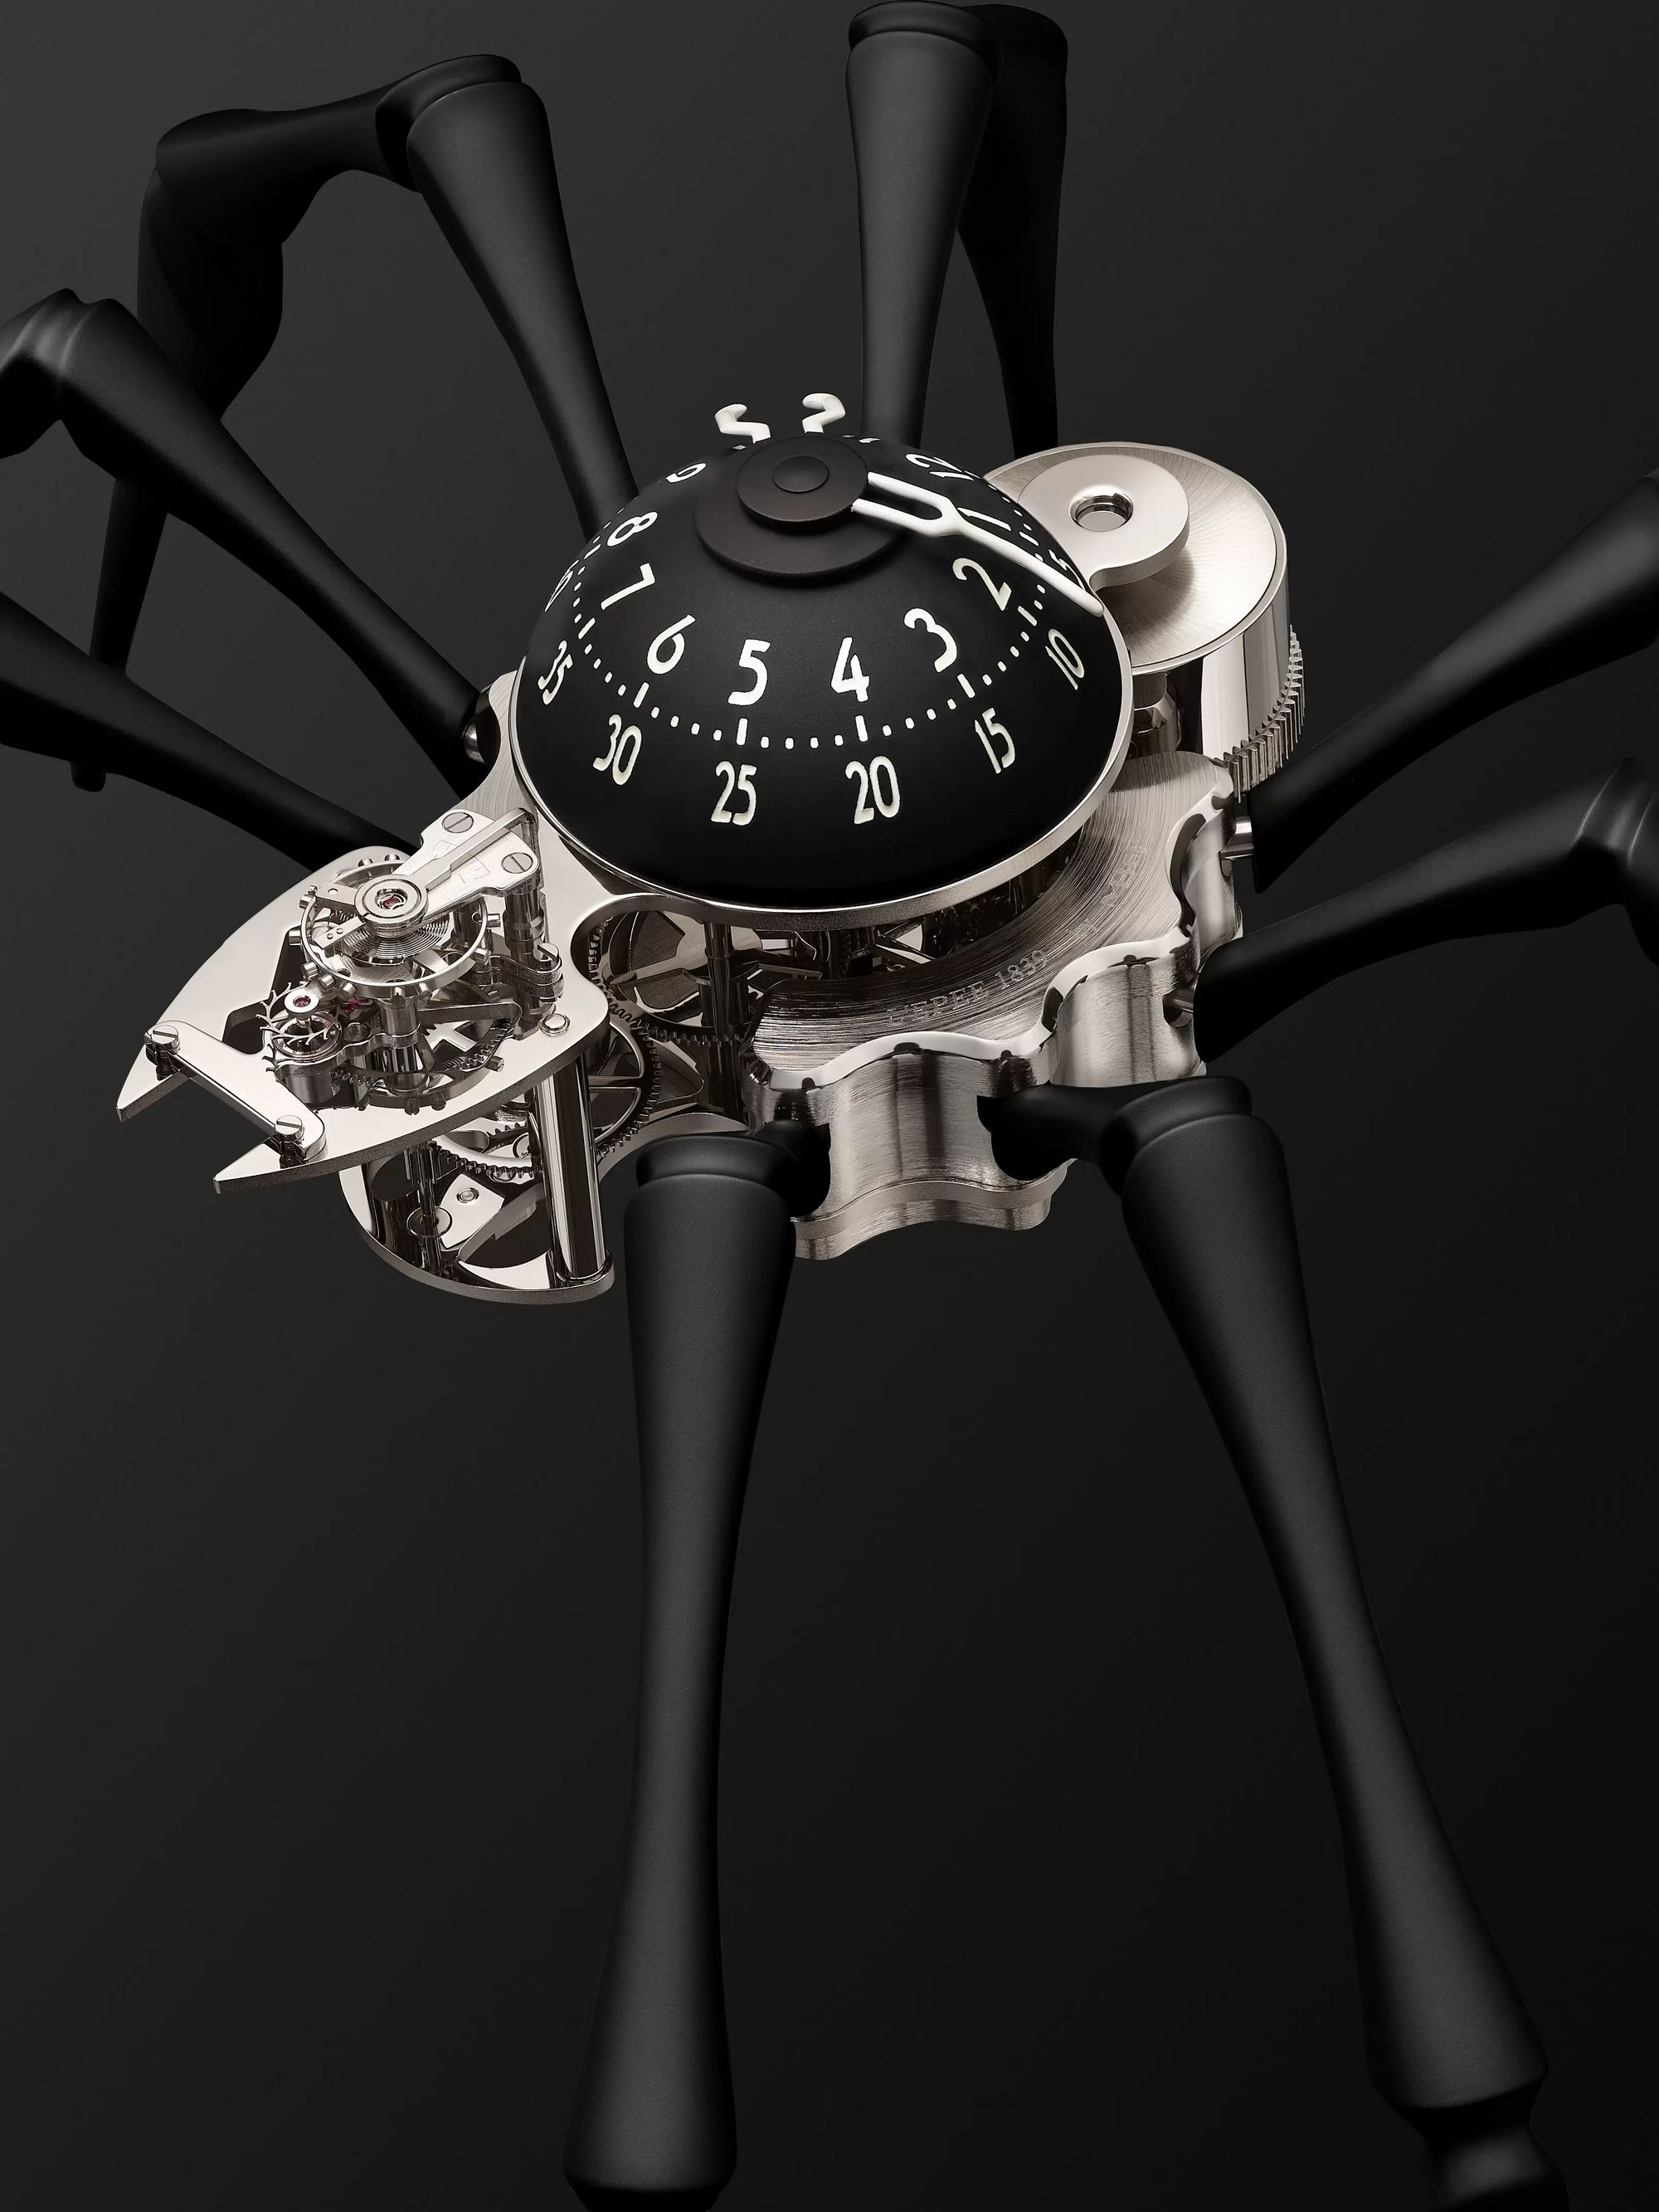 MB&F Arachnophobia Limited Edition Hand-Wound Palladium-Plated Brass and Coated-Aluminium Table Clock, Ref. No. 76.6000/114